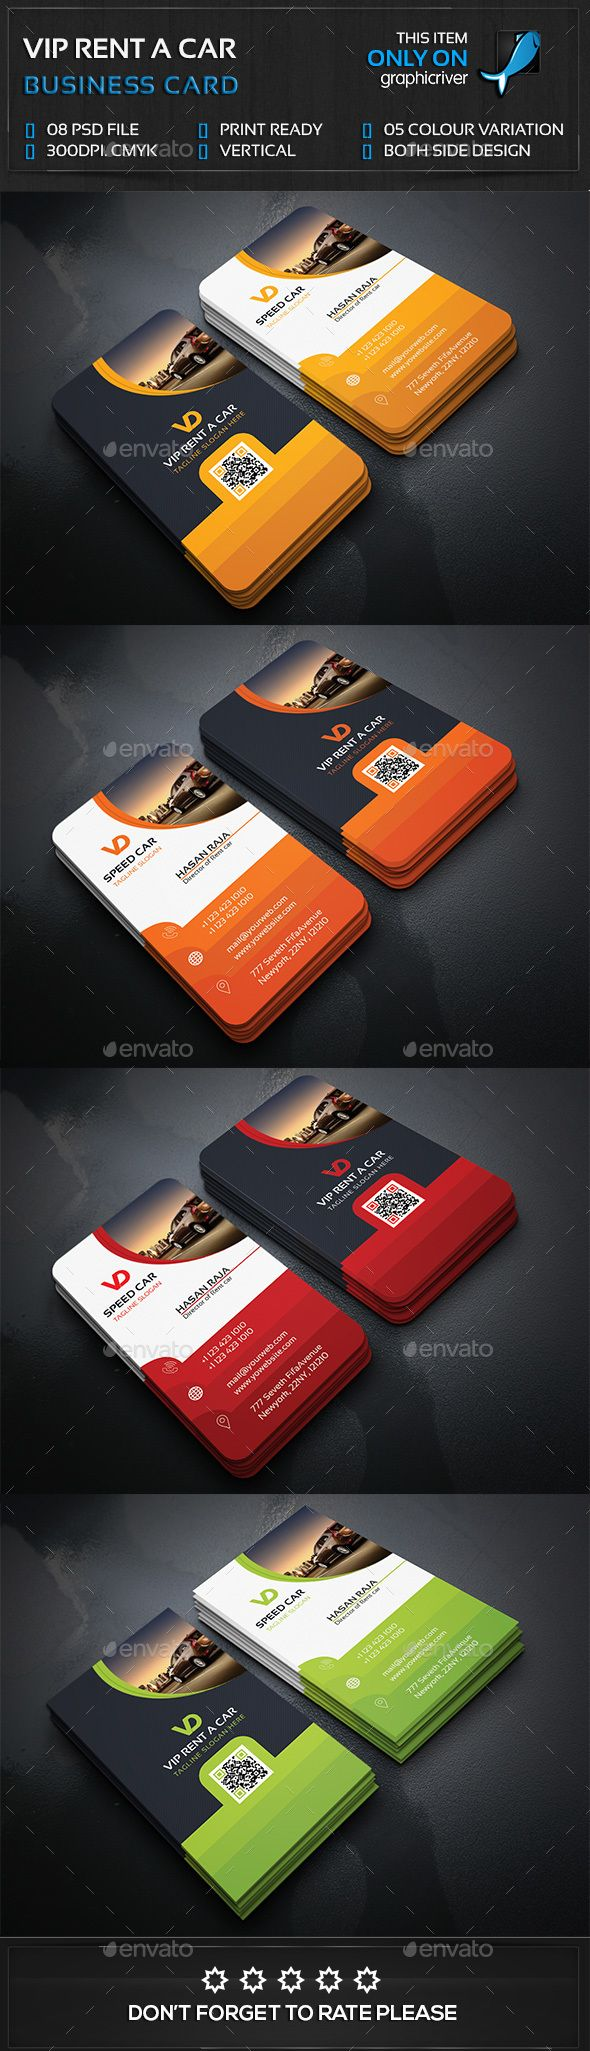 Rent a Car Business Card Template PSD. Download here: http://graphicriver.net/item/rent-a-car-business-card/14853445?ref=ksioks